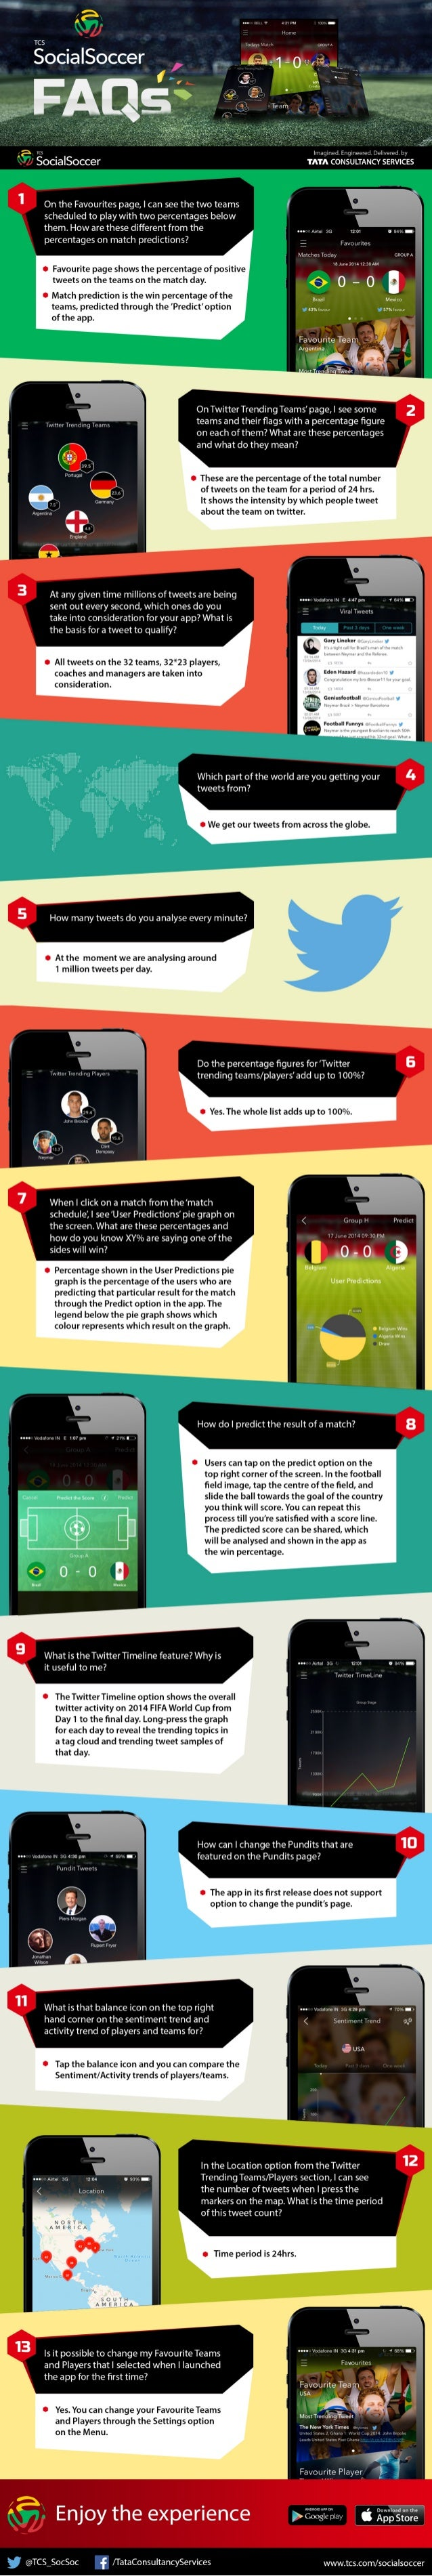 TCS #SocialSoccer FAQs - Re-imagining soccer, this World Cup!